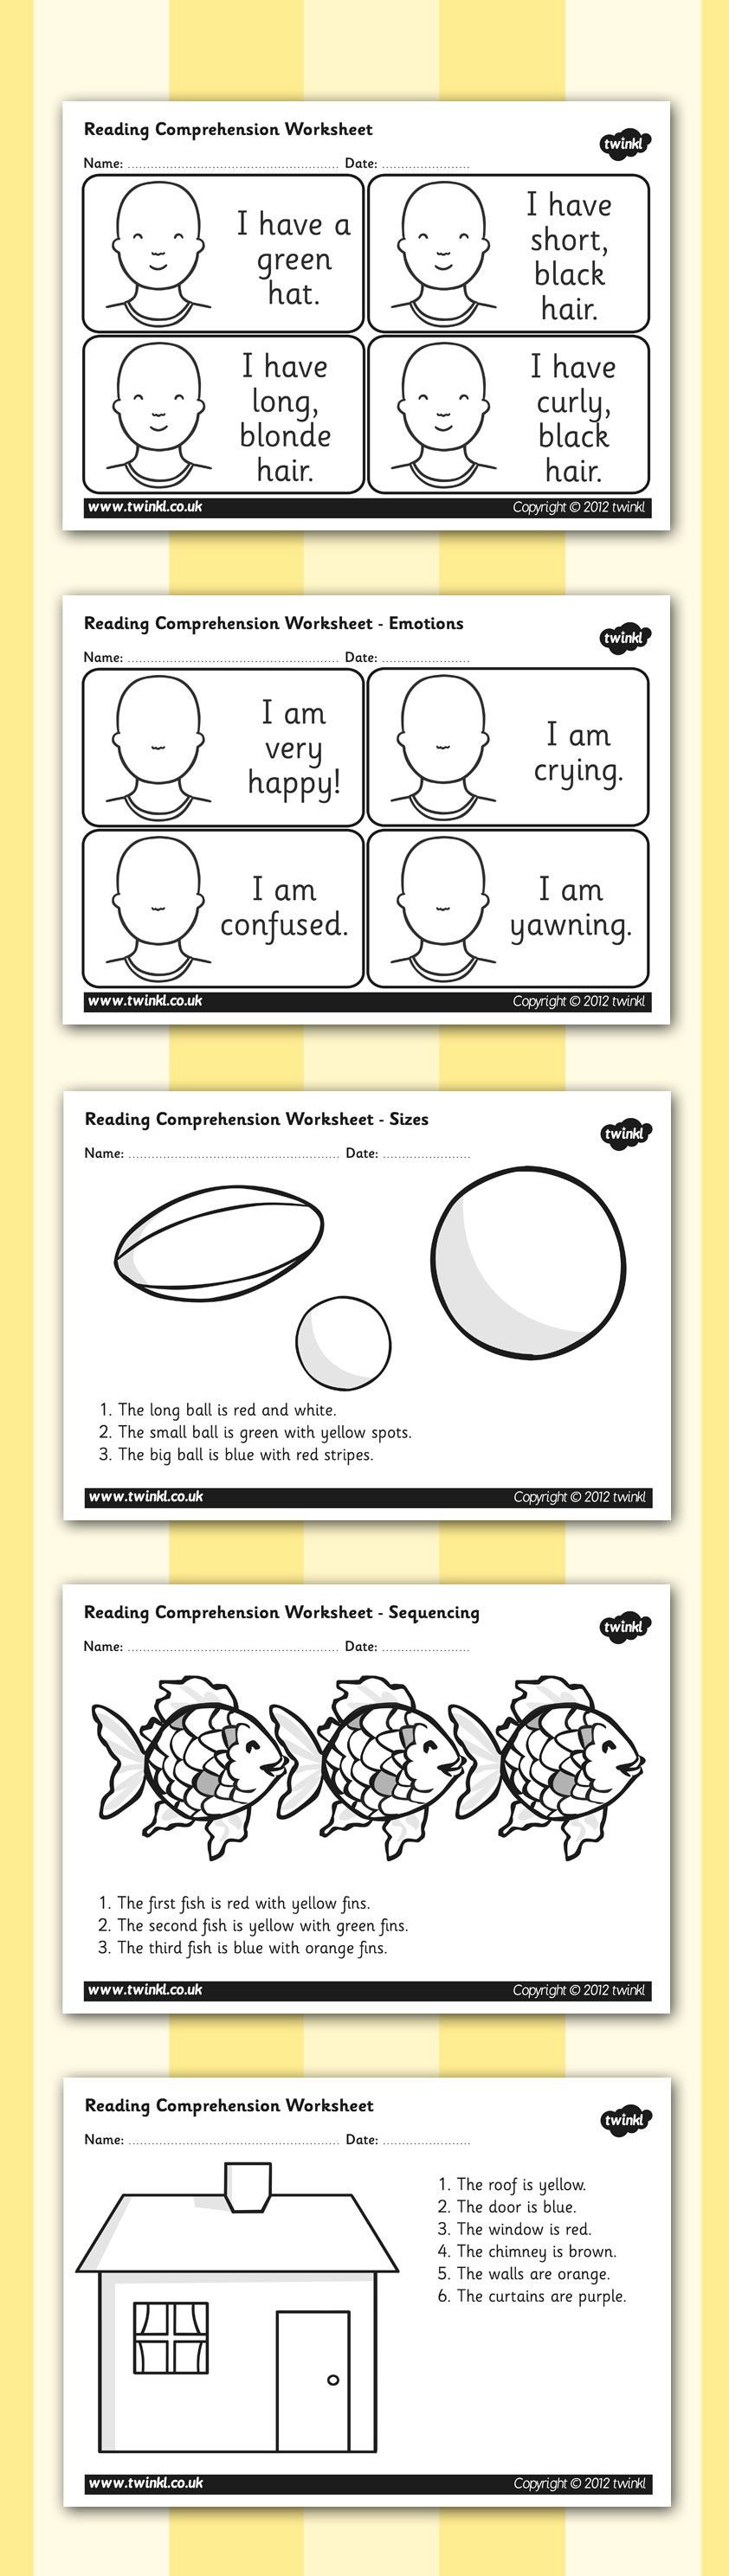 Uncategorized Science Reading Comprehension Worksheets twinkl resources reading comprehension worksheets higher ability printable for primary